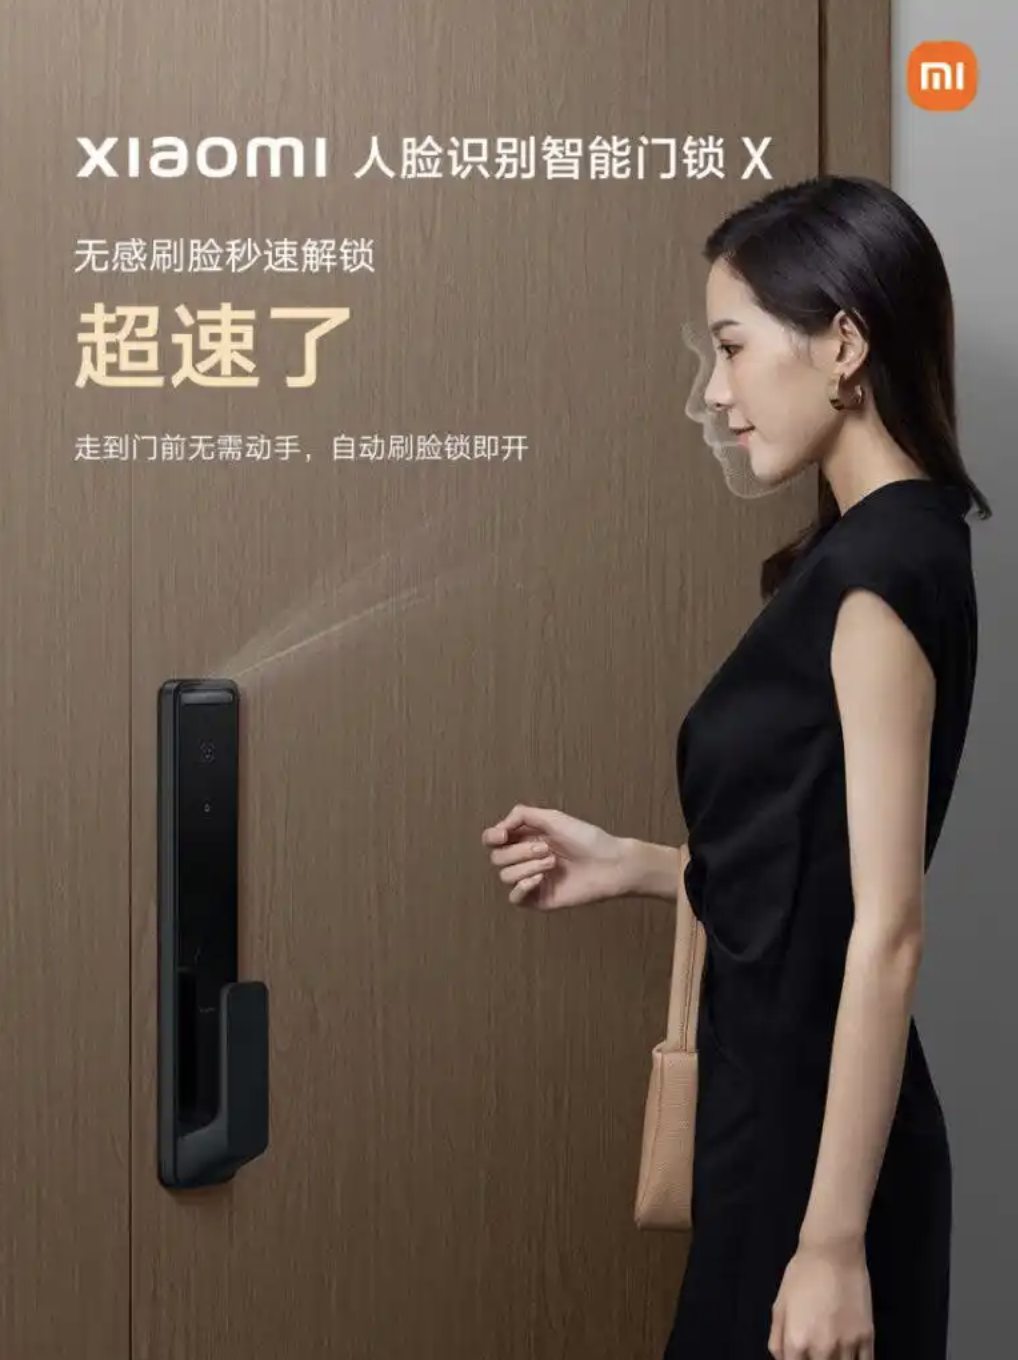 Xiaomi Announced The Door Lock With Face Recognition! 1